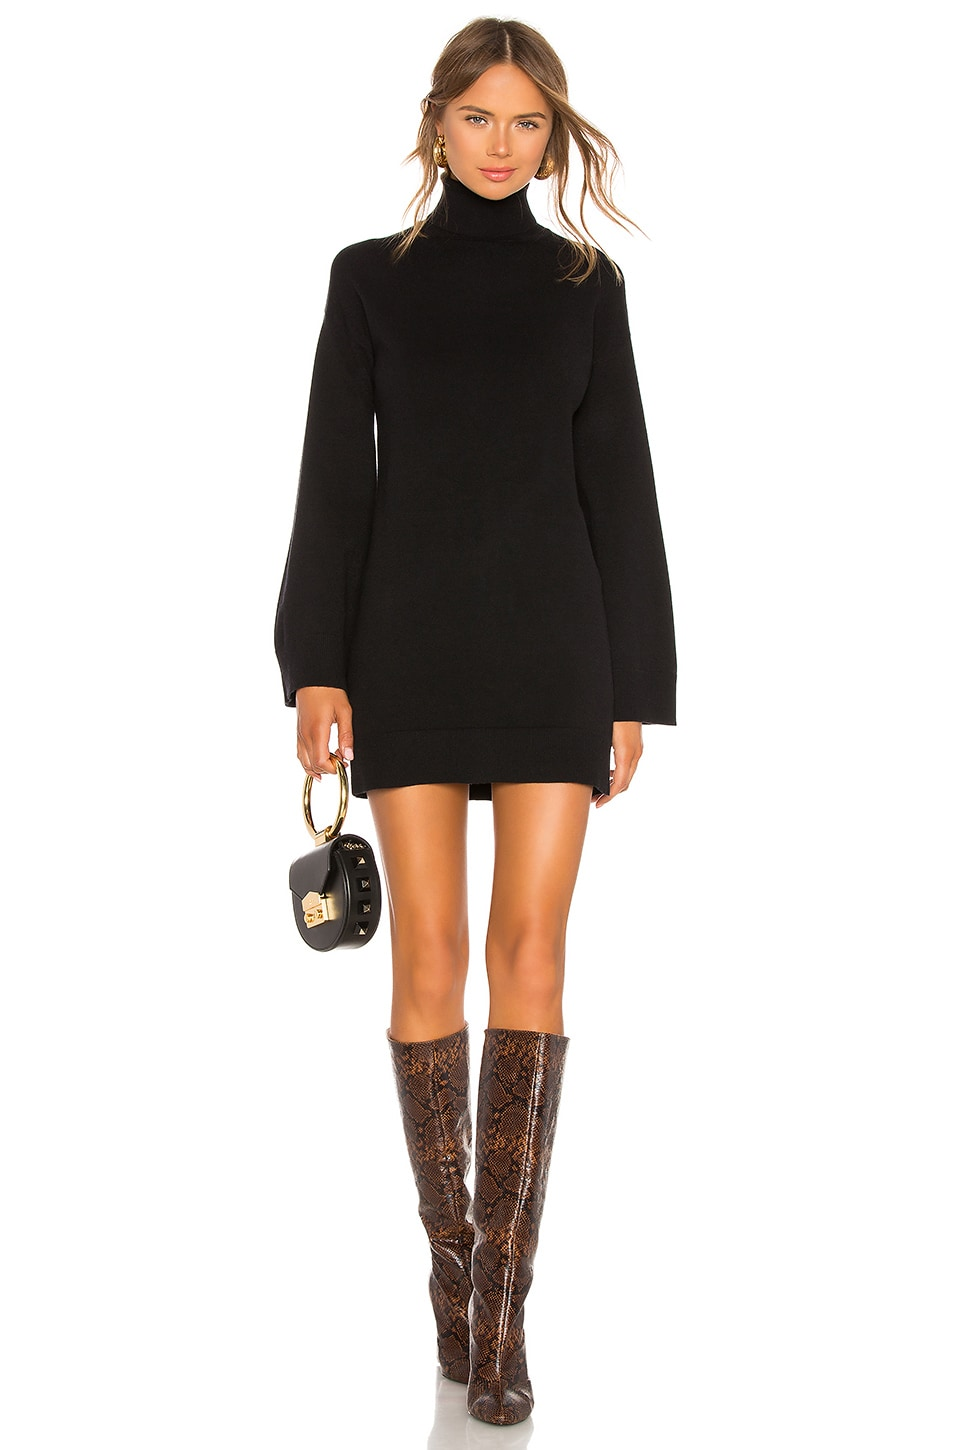 LPA Fallon Sweater Dress in Black